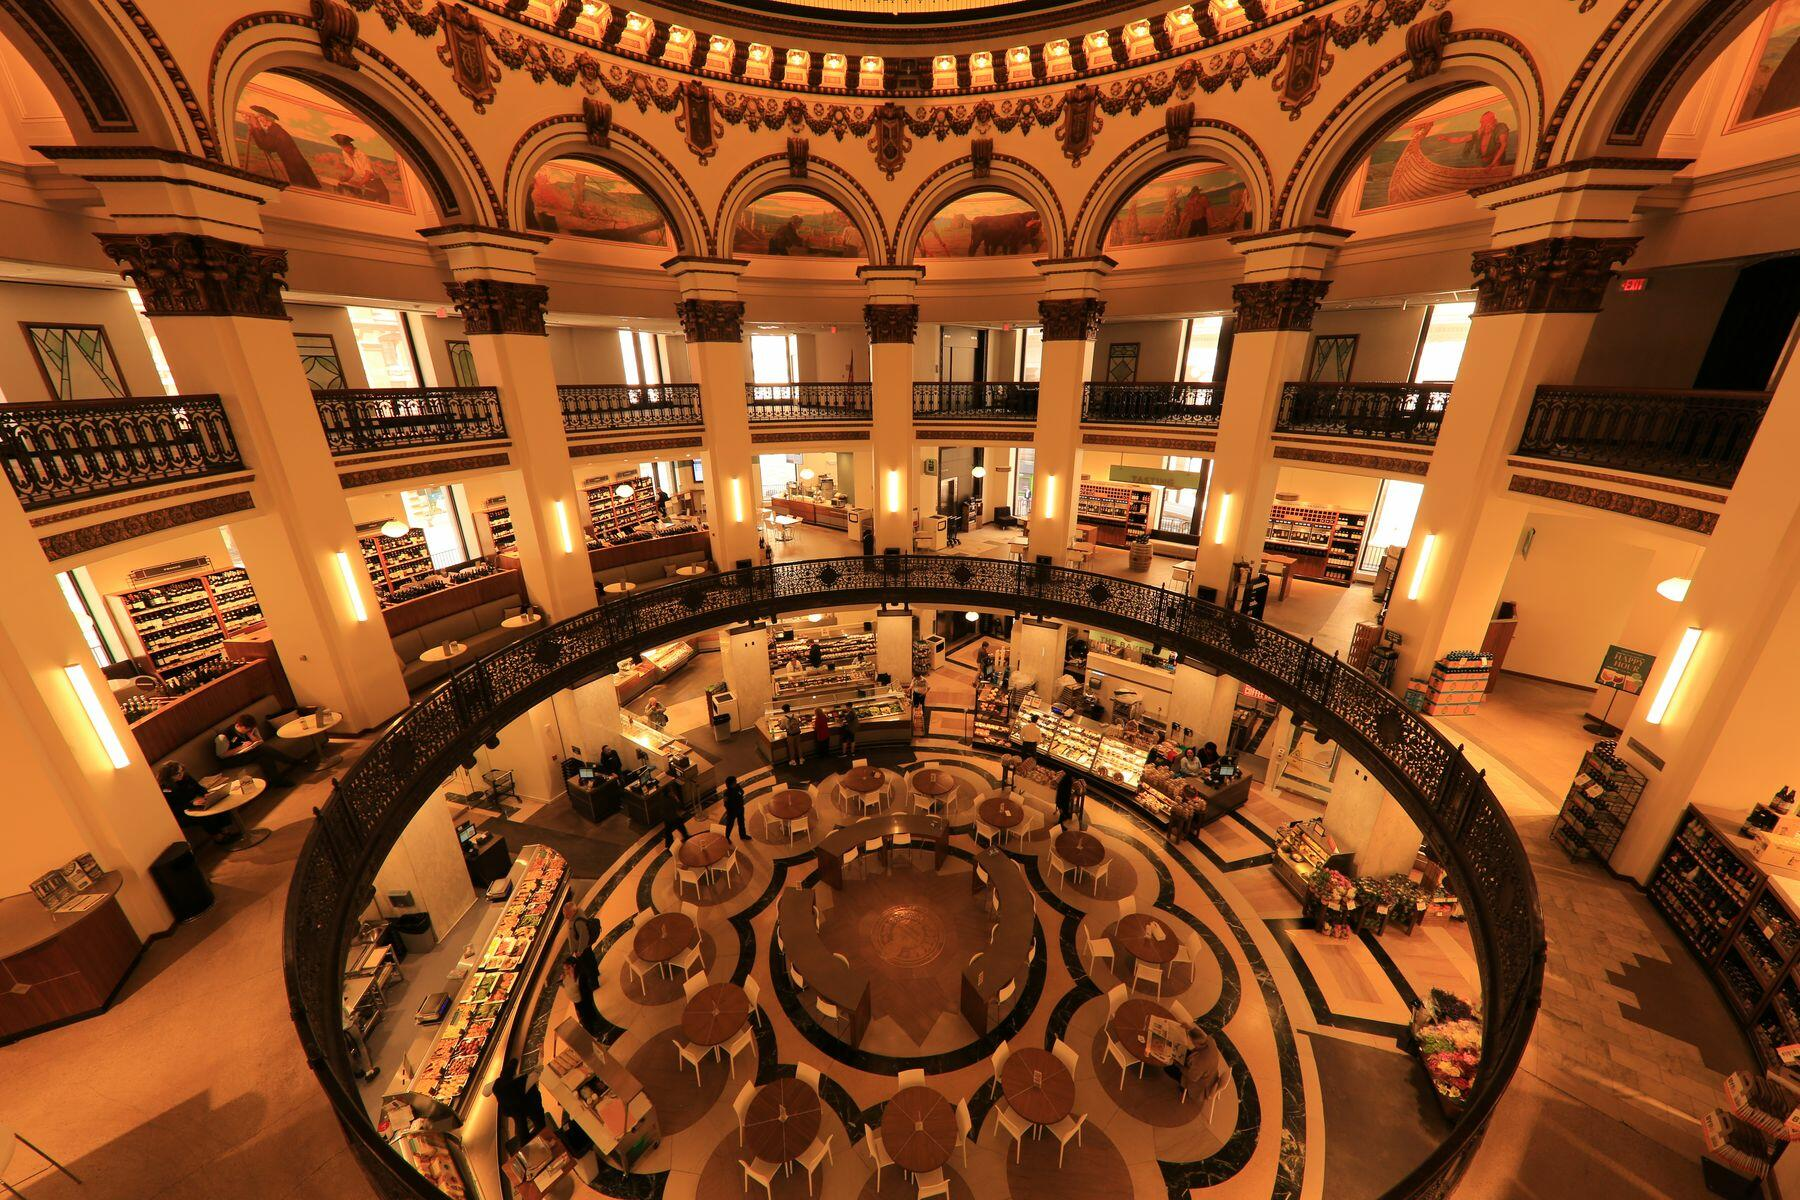 Interior of Heinen's Market, under a stained-glass rotunda